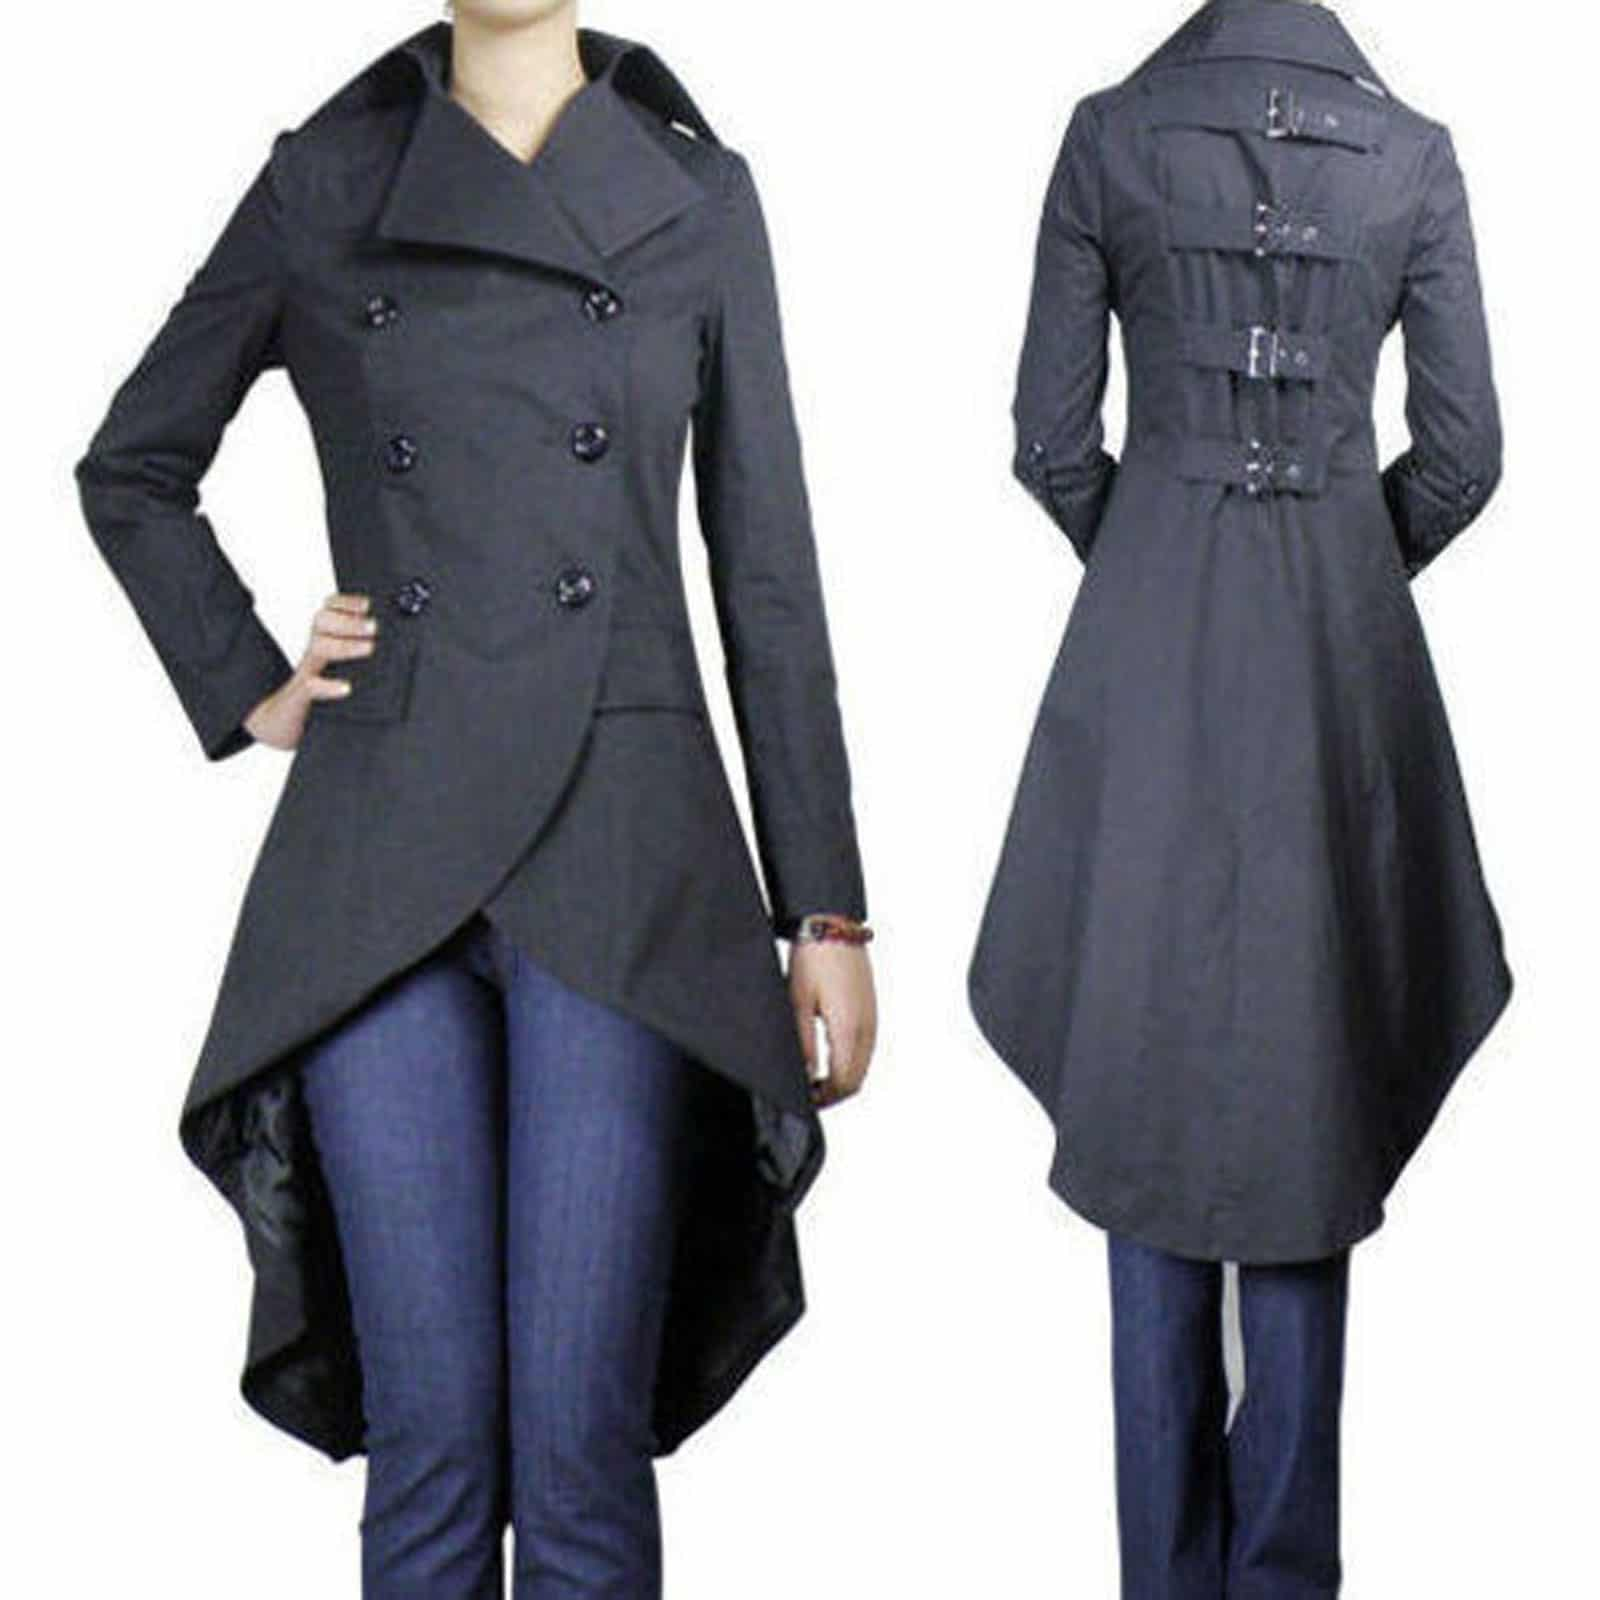 Long Jackets fishtail coat, long jackets for women, women gothic jackets, best jackets  for women HOSVAEJ